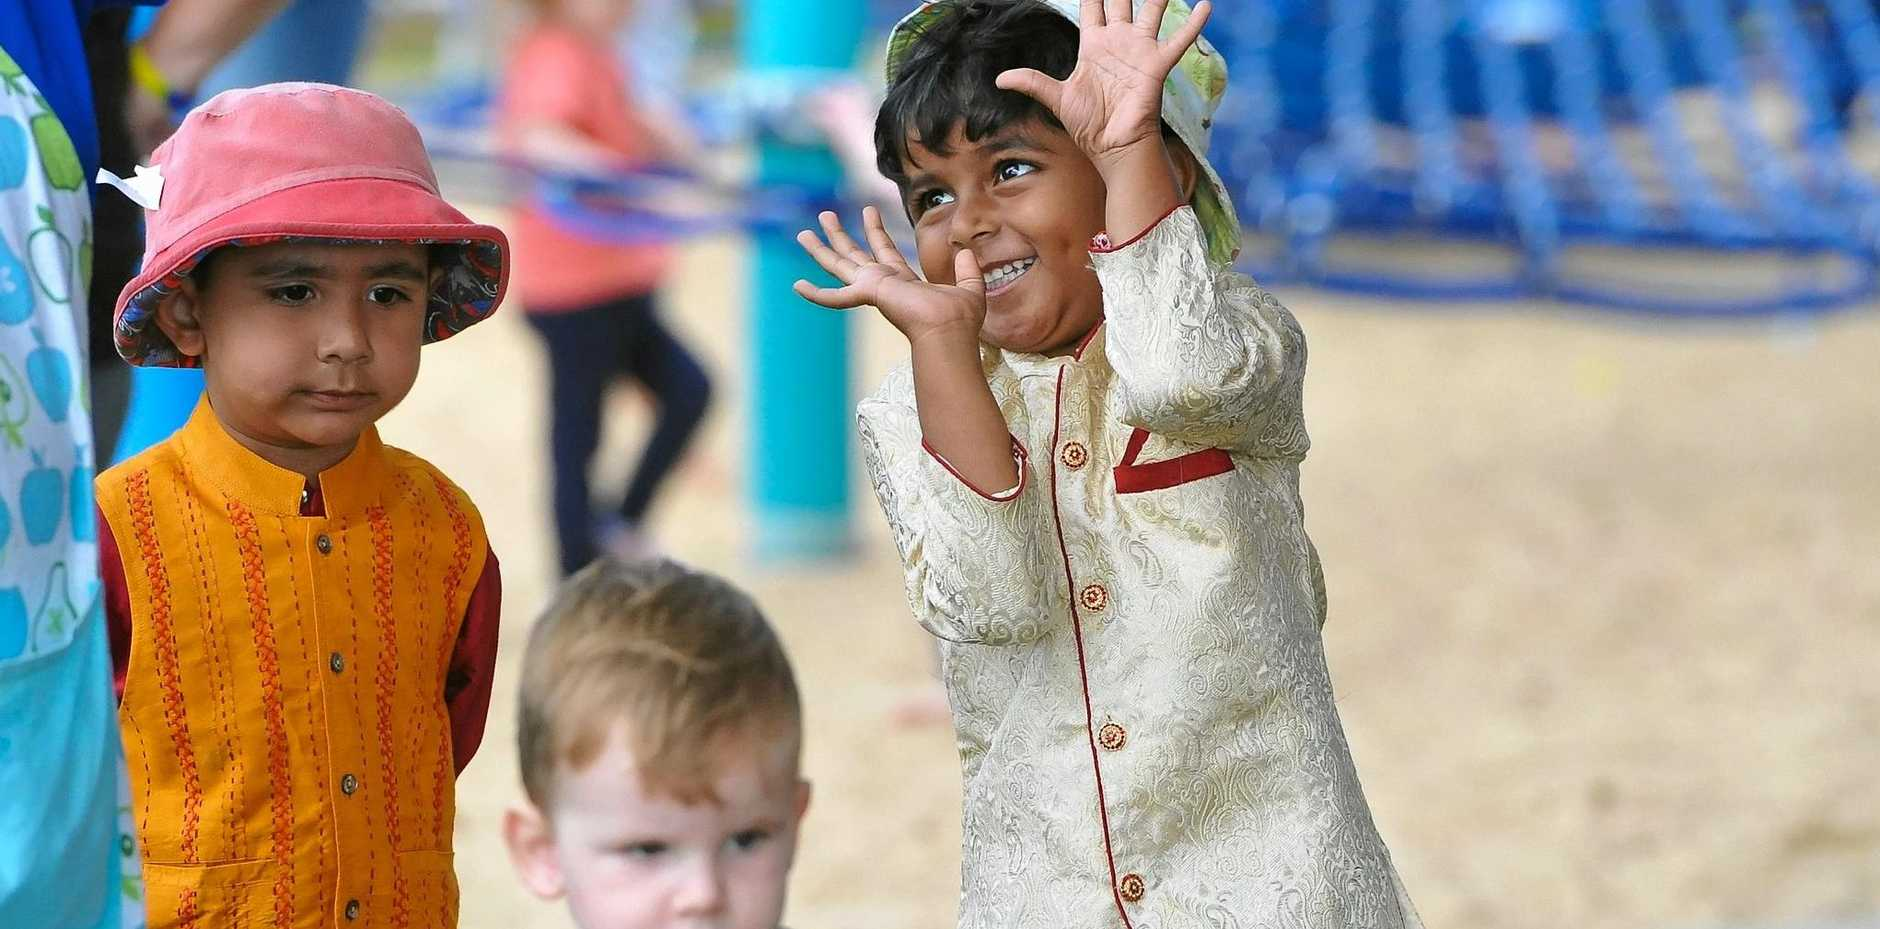 FAMILY FUN: Children enjoyed story-telling, henna painting, dancing and tasty snacks at the playgroup.